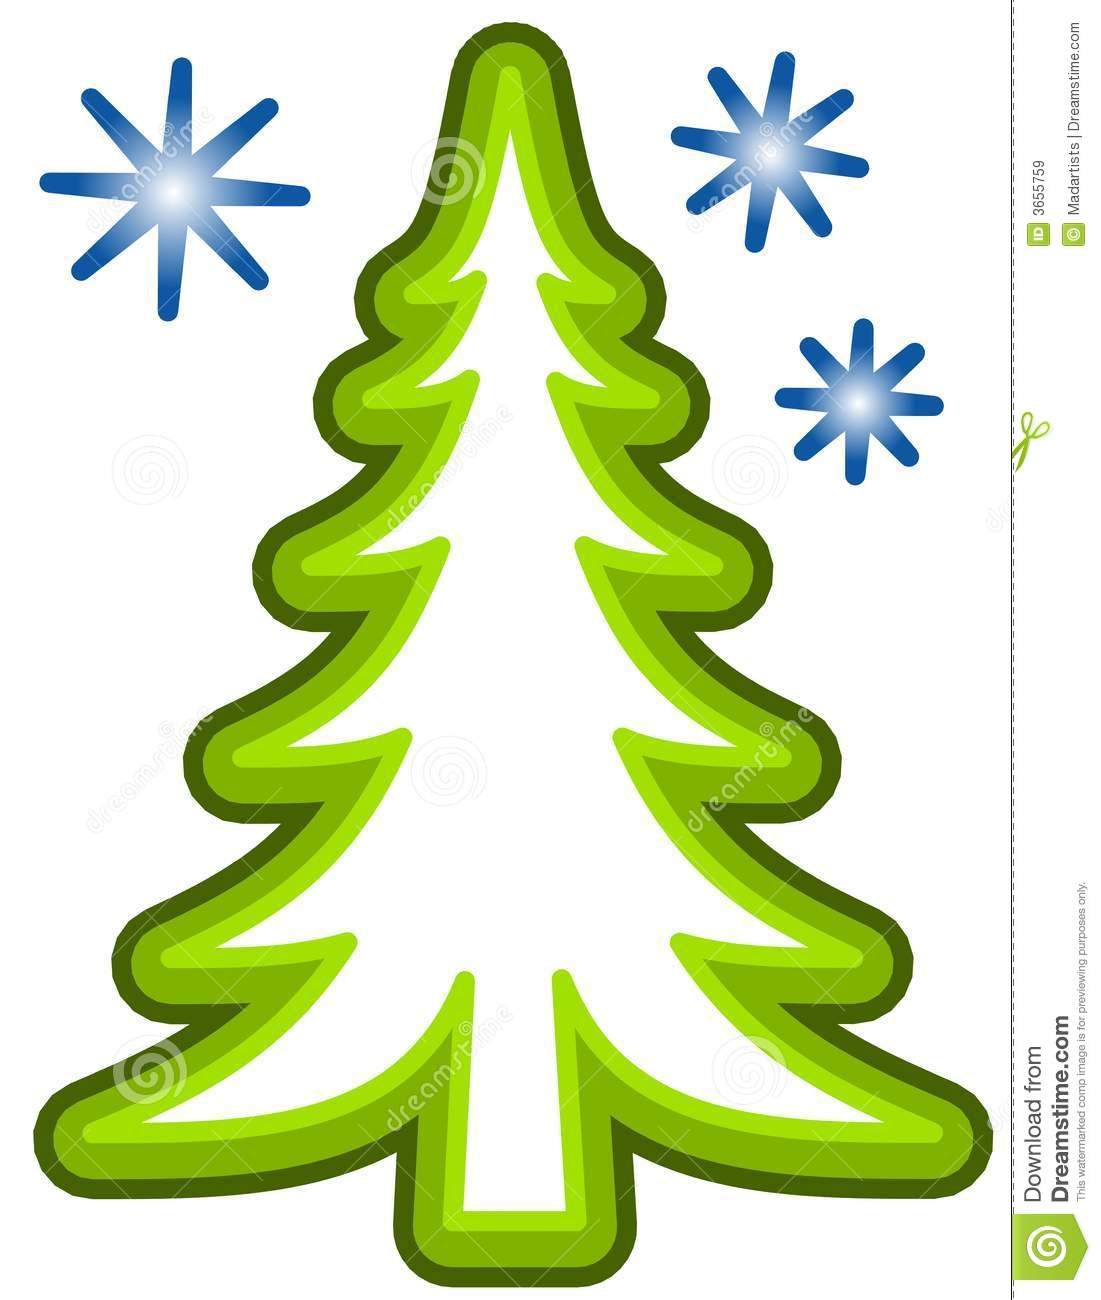 simple christmas tree clip art clipart panda free clipart images rh clipartpanda com clip art christmas tree cutouts clip art christmas tree pictures